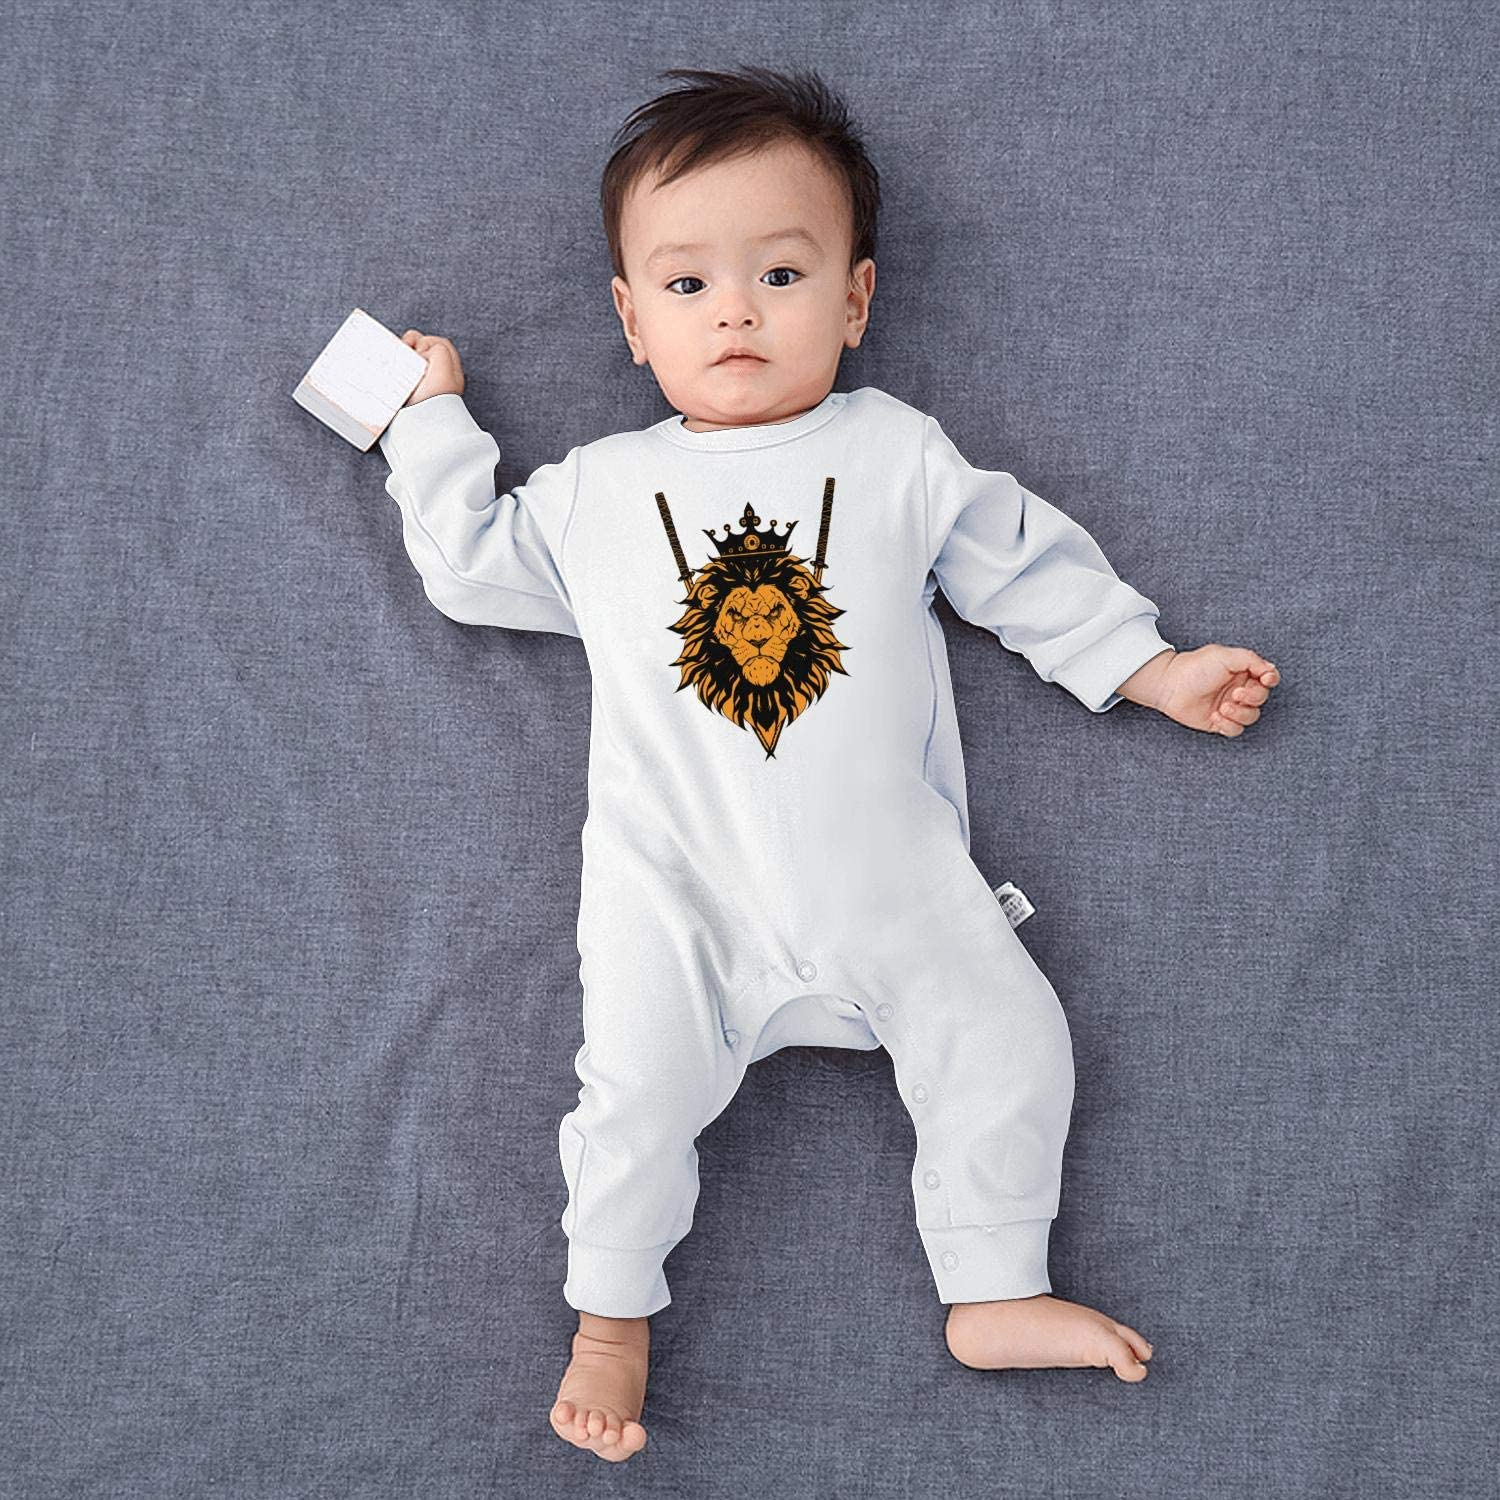 The King Lion with Knifes.PNG Stylish Newborn Crawling Suit Lone-Sleeved Romper Bodysuit